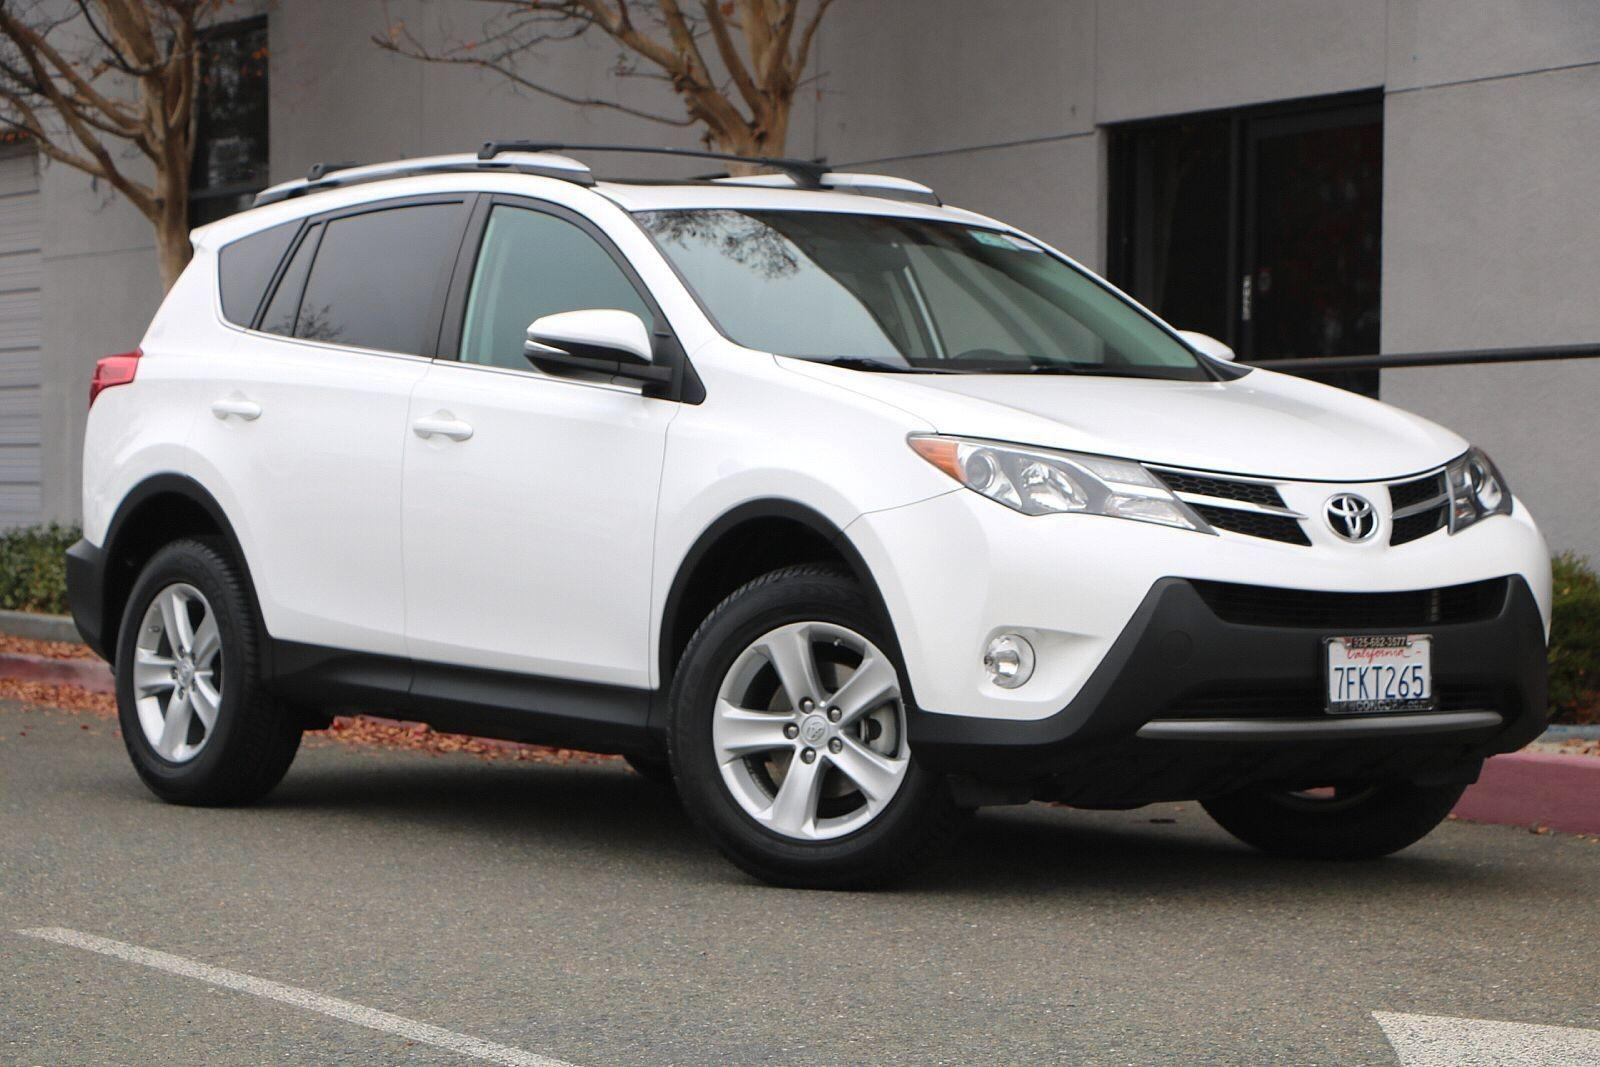 Pre-Owned 2013 Toyota RAV4 AWD 4dr XLE